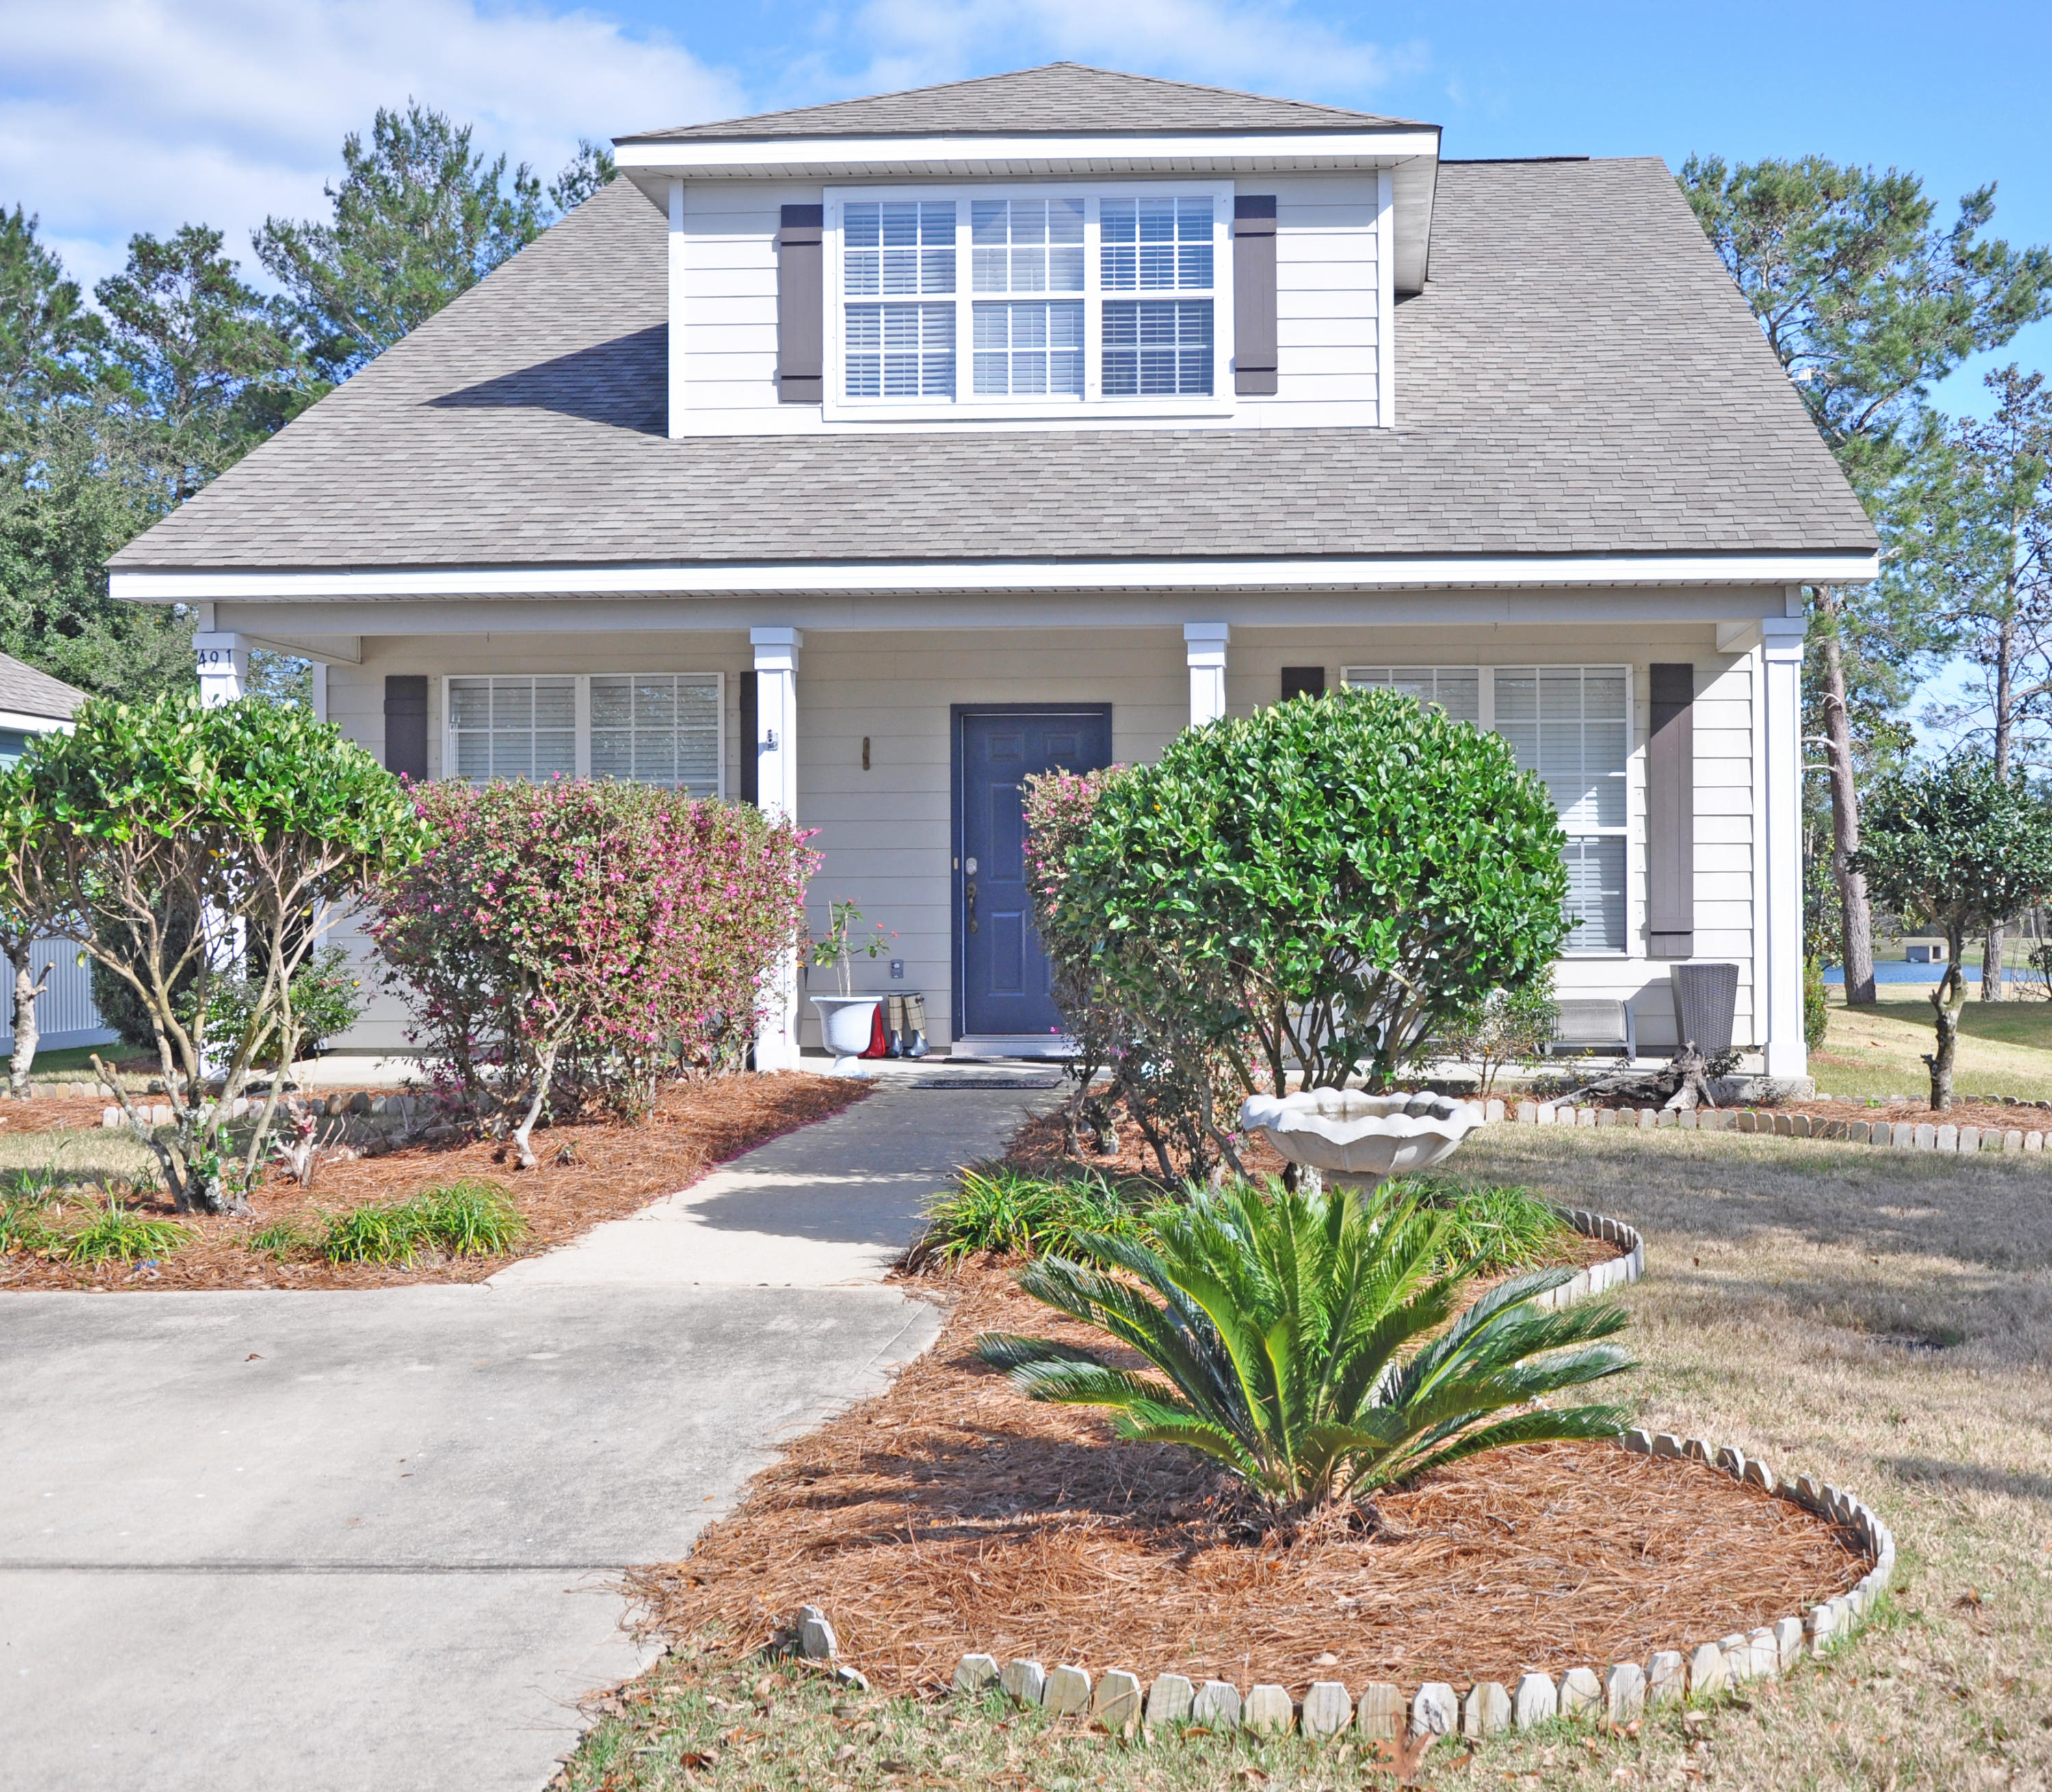 Photo of home for sale at 491 Fanny Ann, Freeport FL